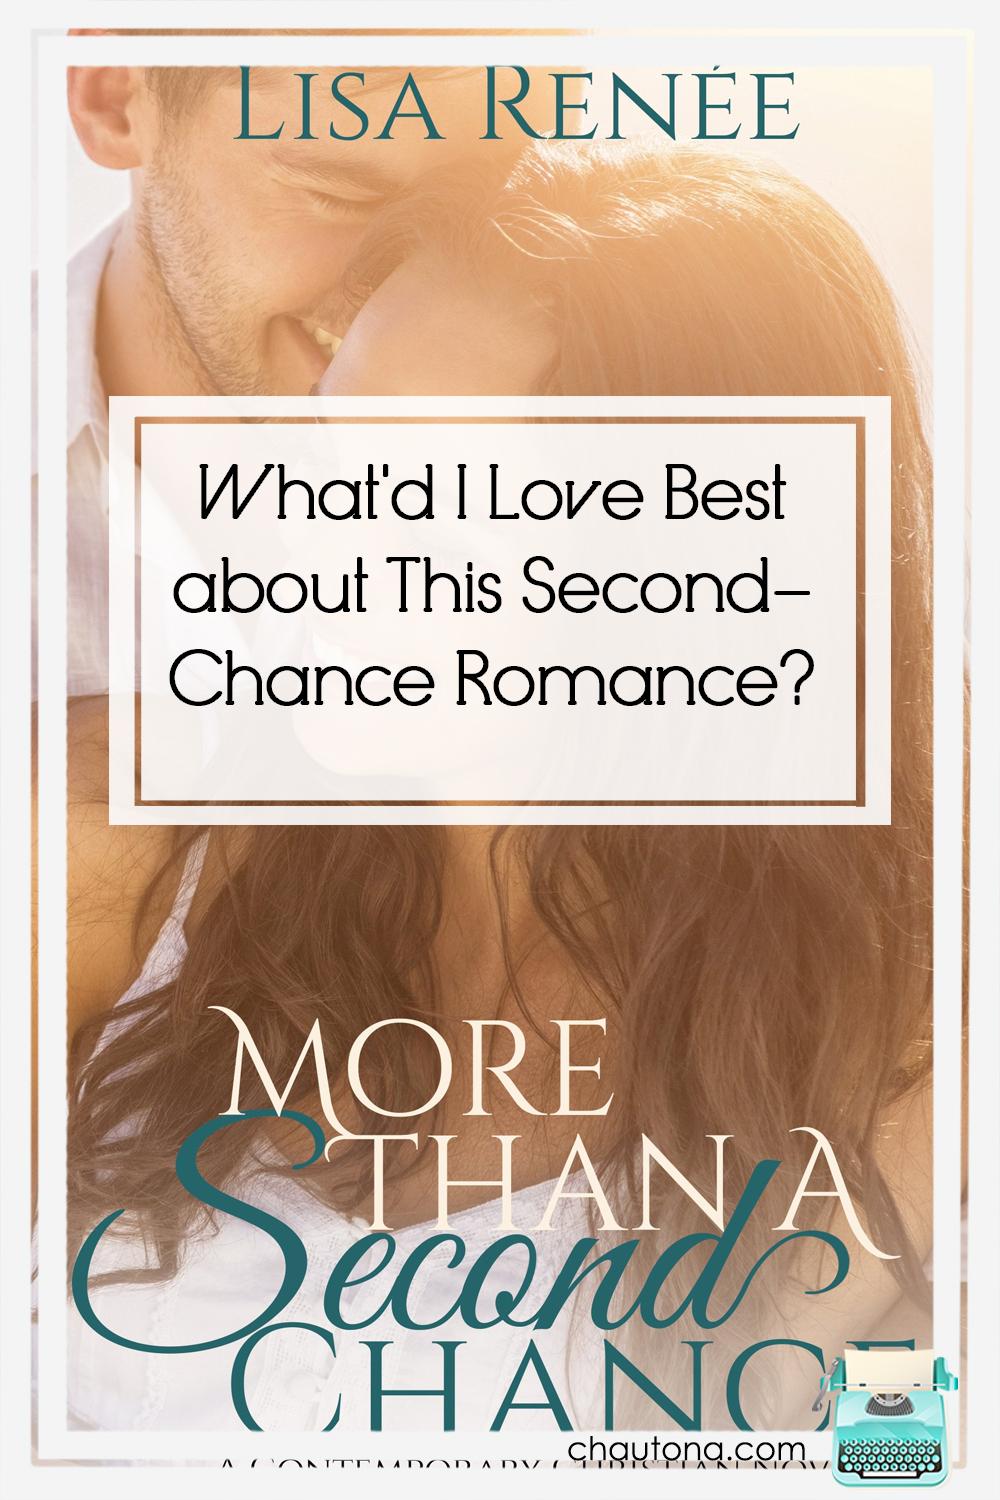 I'm not often a straight-up romance fan, but this second-chance romance caught my attention and kept me reading and without overdosing me with sap! via @chautonahavig